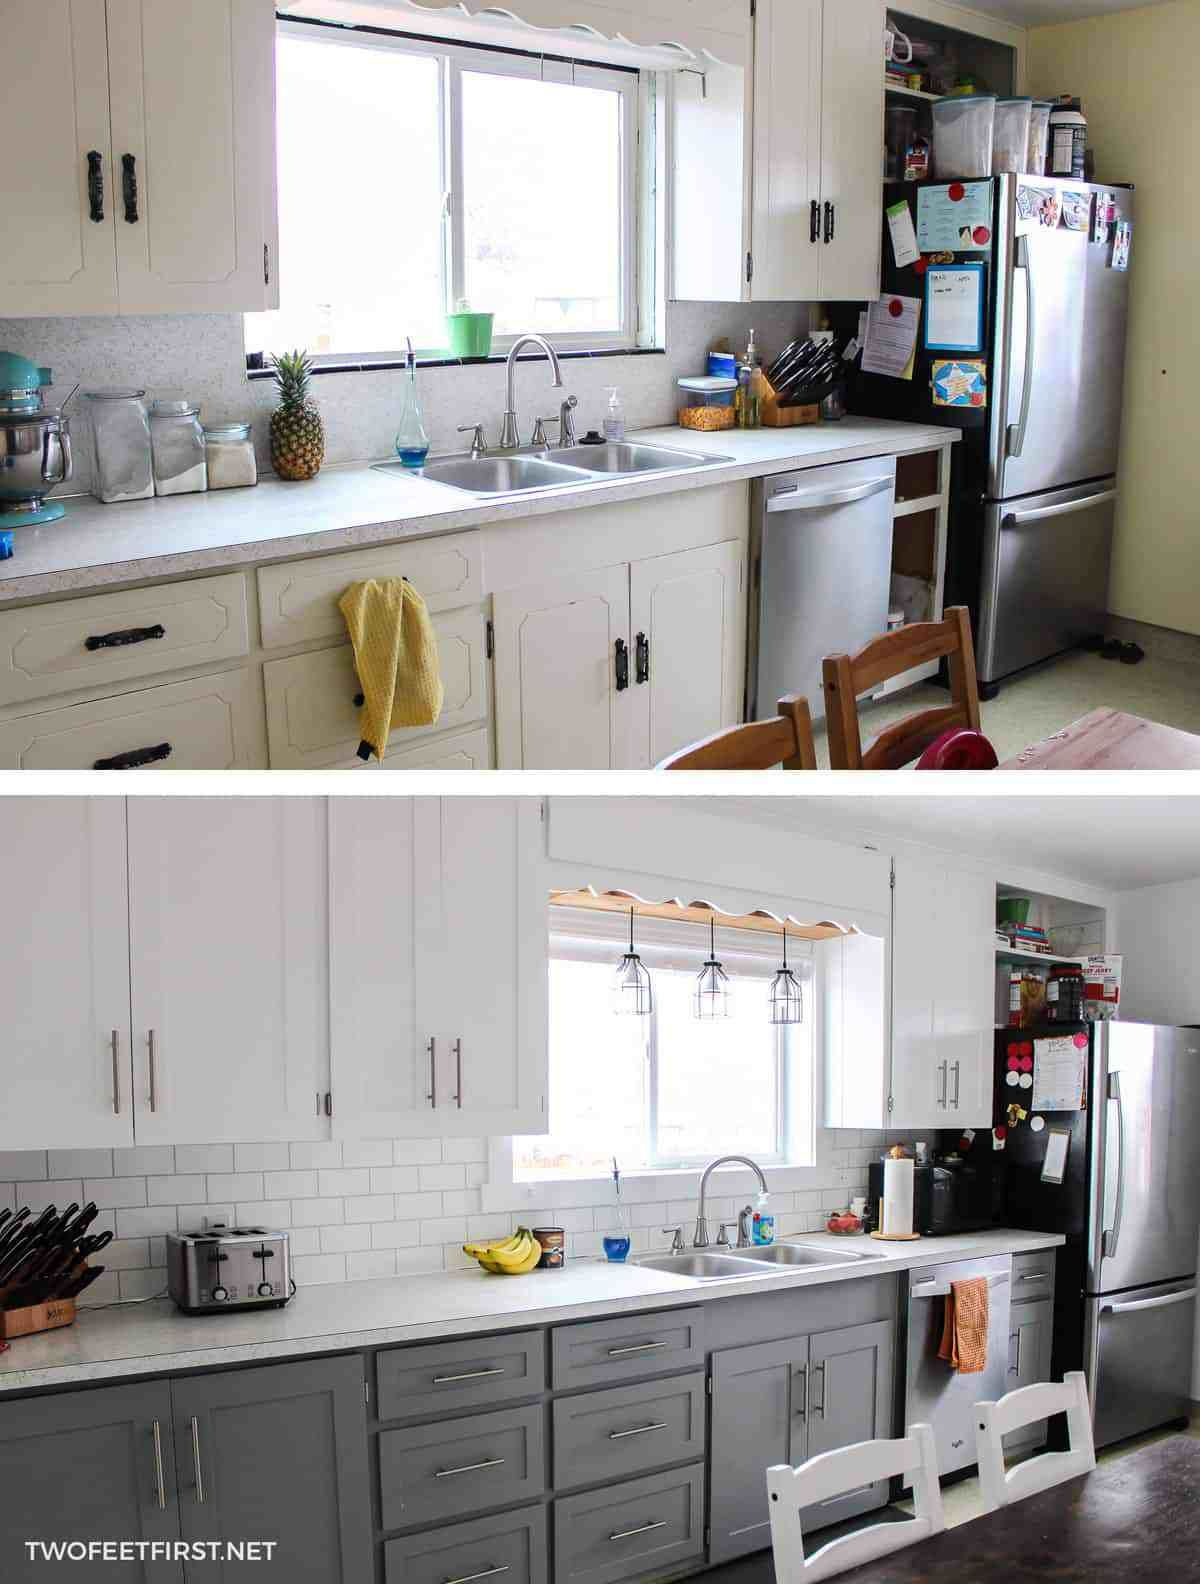 Update Kitchen Cabinets For Cheap Kitchen Cabinets On A Budget Update Kitchen Cabinets Best Kitchen Cabinets